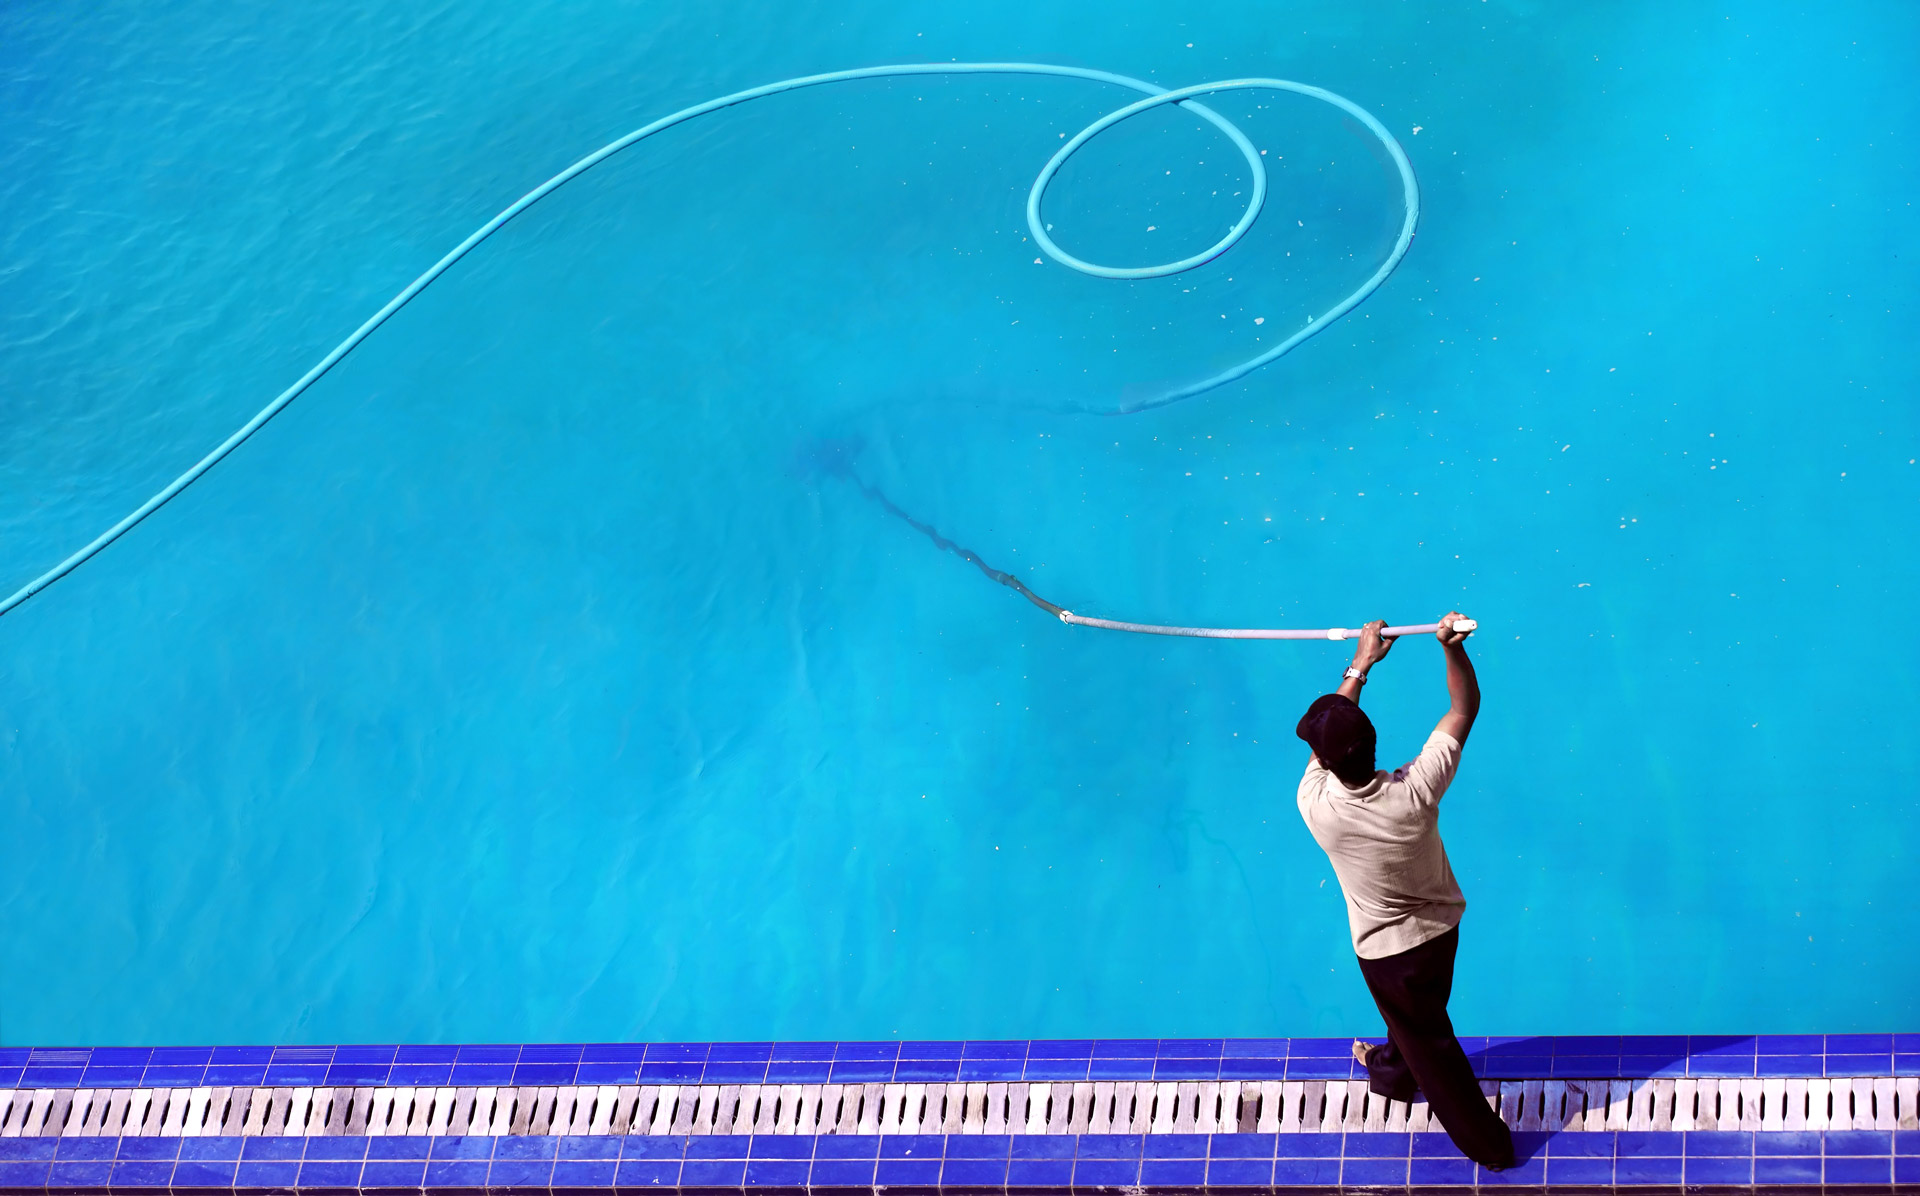 Pool Cleaning And Maintenance $25 off - 1st months pool cleaning service! - olympic swimming